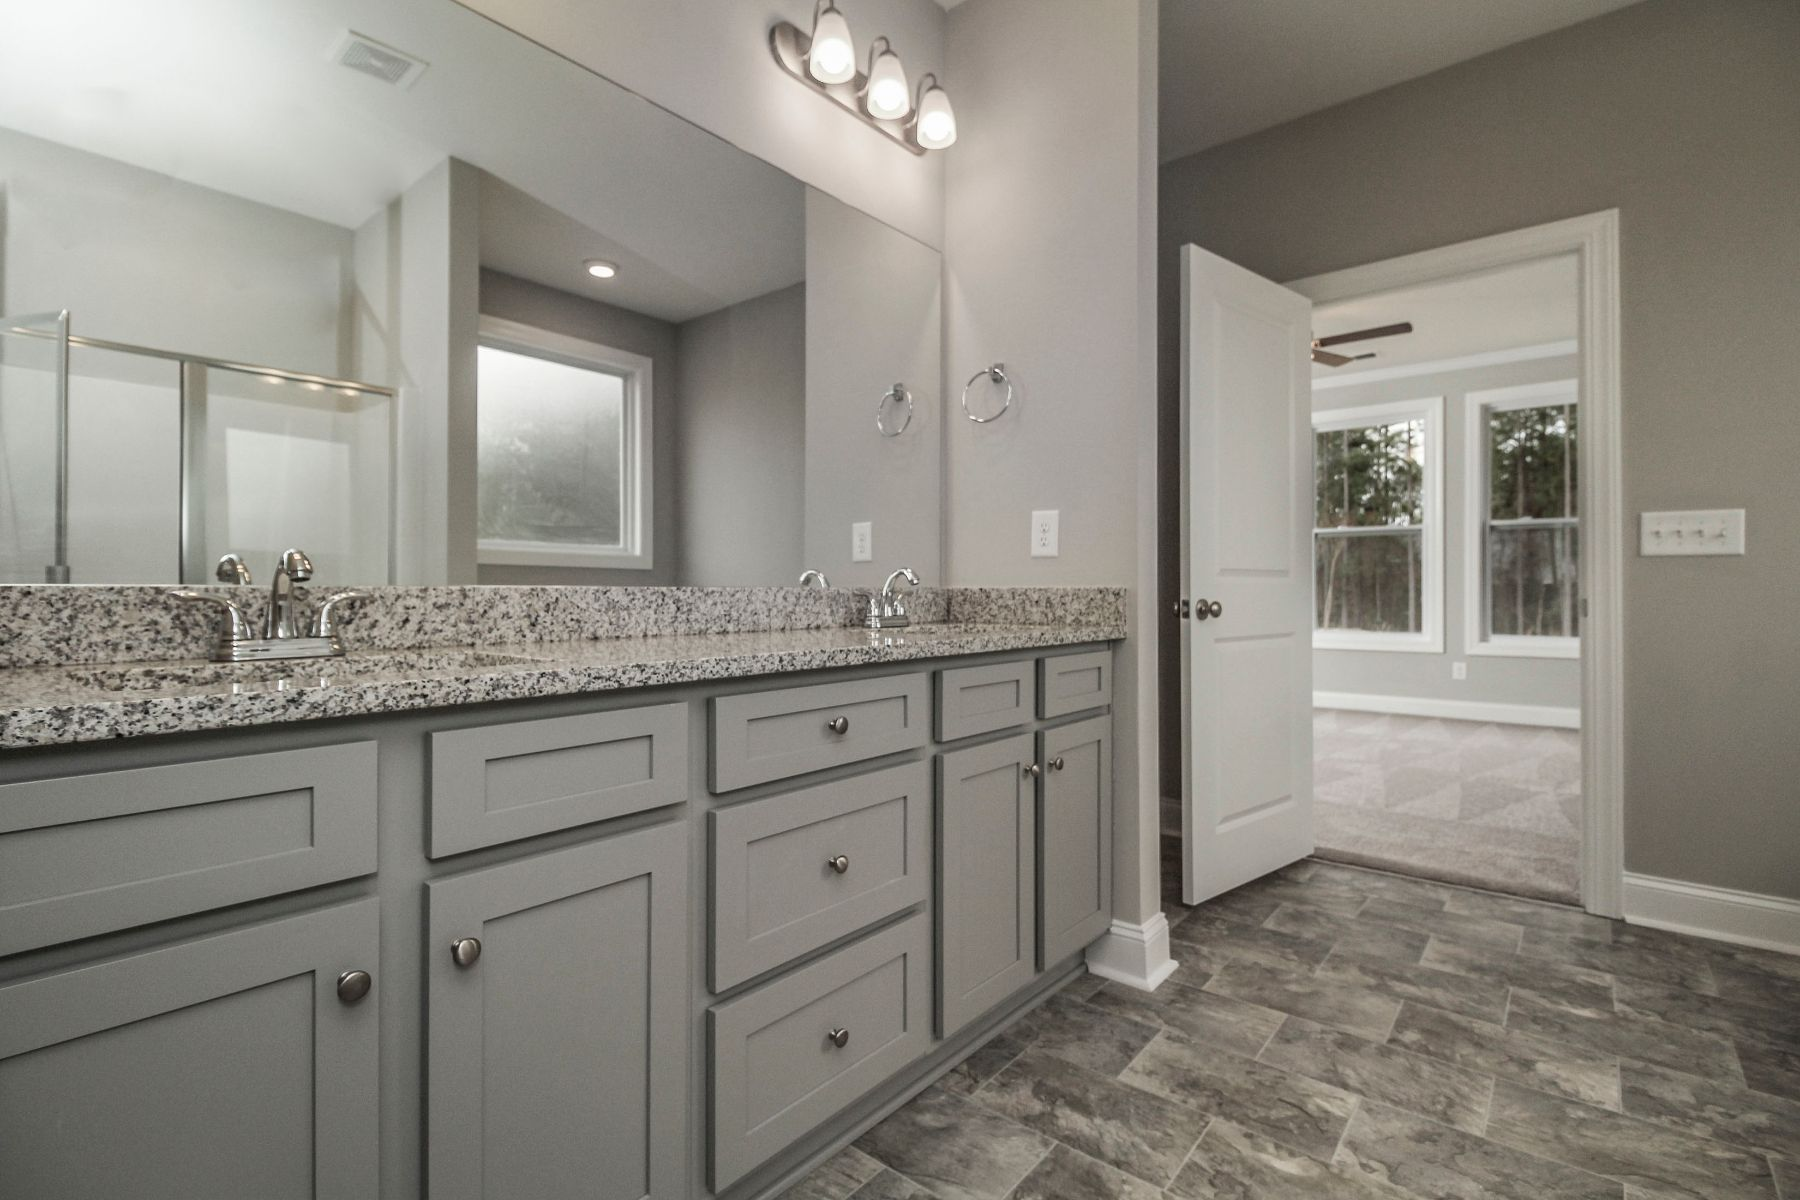 Bathroom featured in The Aviary By Executive Construction Homes in Columbia, SC